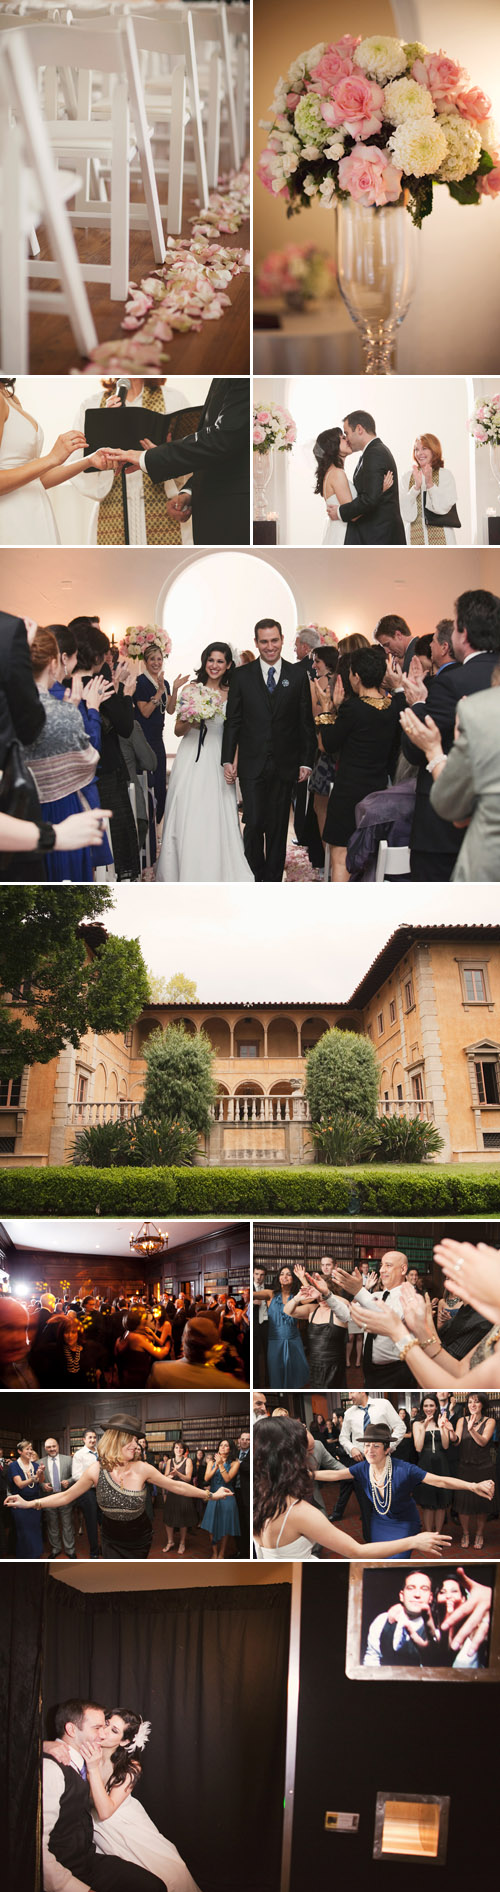 glamorous Sierra Madre Persian real wedding, with two ceremonies, images by Stephanie Williams Photography